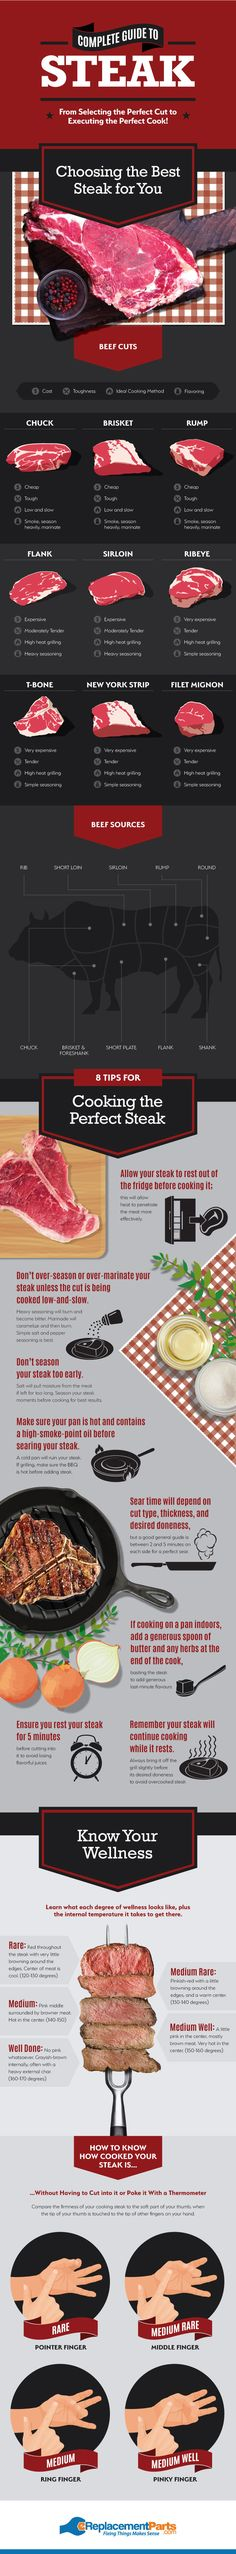 Complete Guide to Cooking Steak [Infographic]